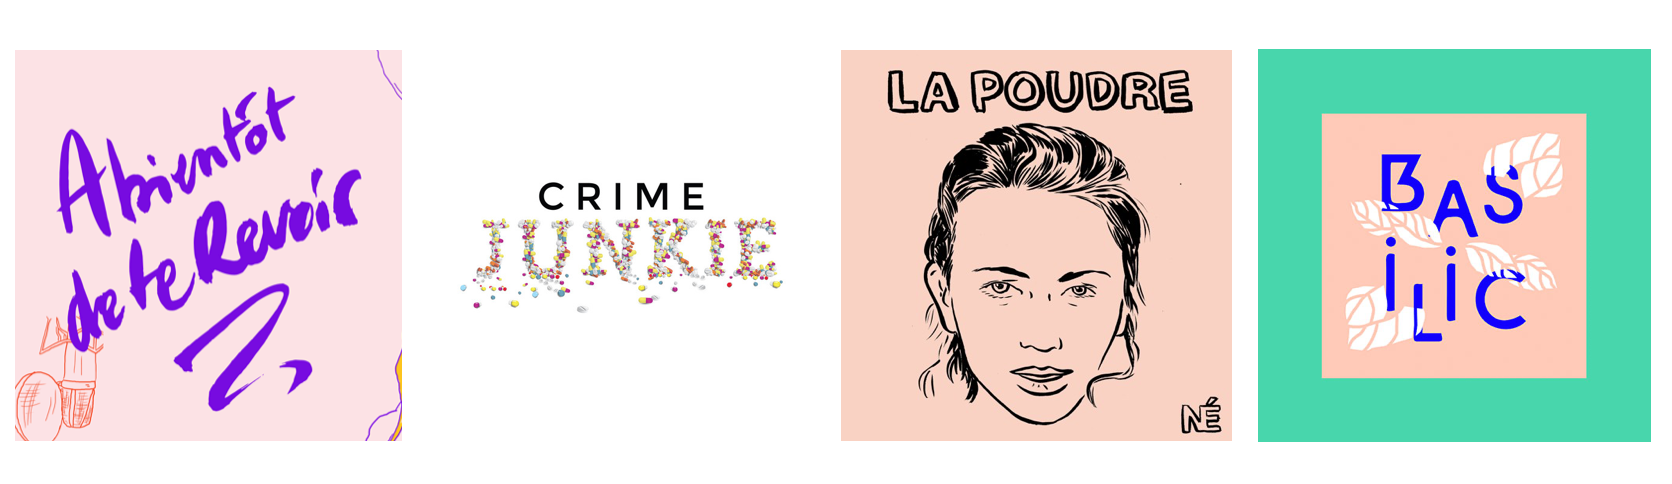 podcasts la poudre a bientot de te revoir crime junkie basilic confinement ennui bored